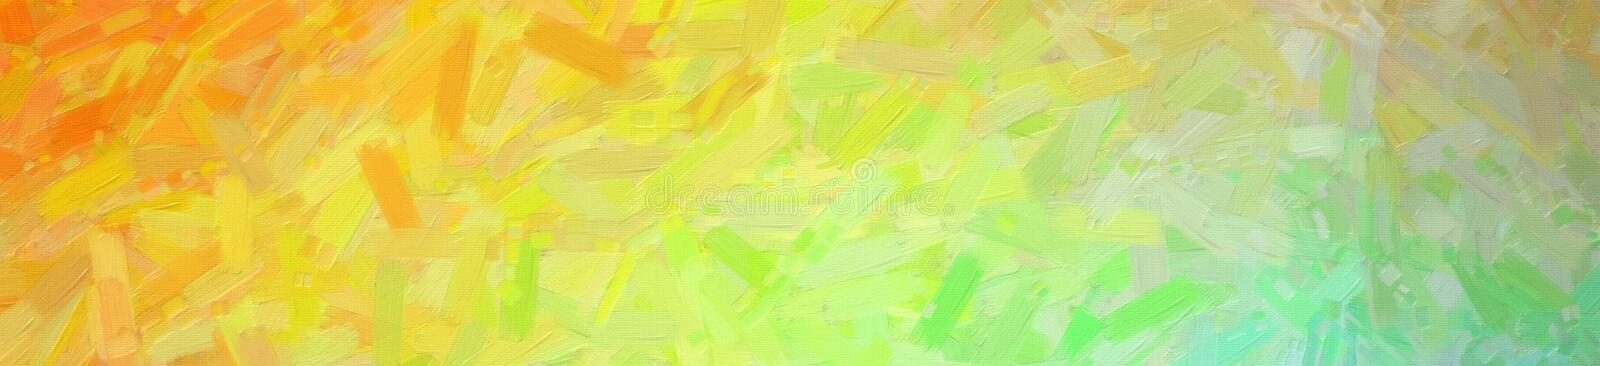 Abstract illustration of blue green orange Abstract Oil Painting banner background, digitally generated. Abstract illustration of blue green orange Abstract Oil royalty free stock photography